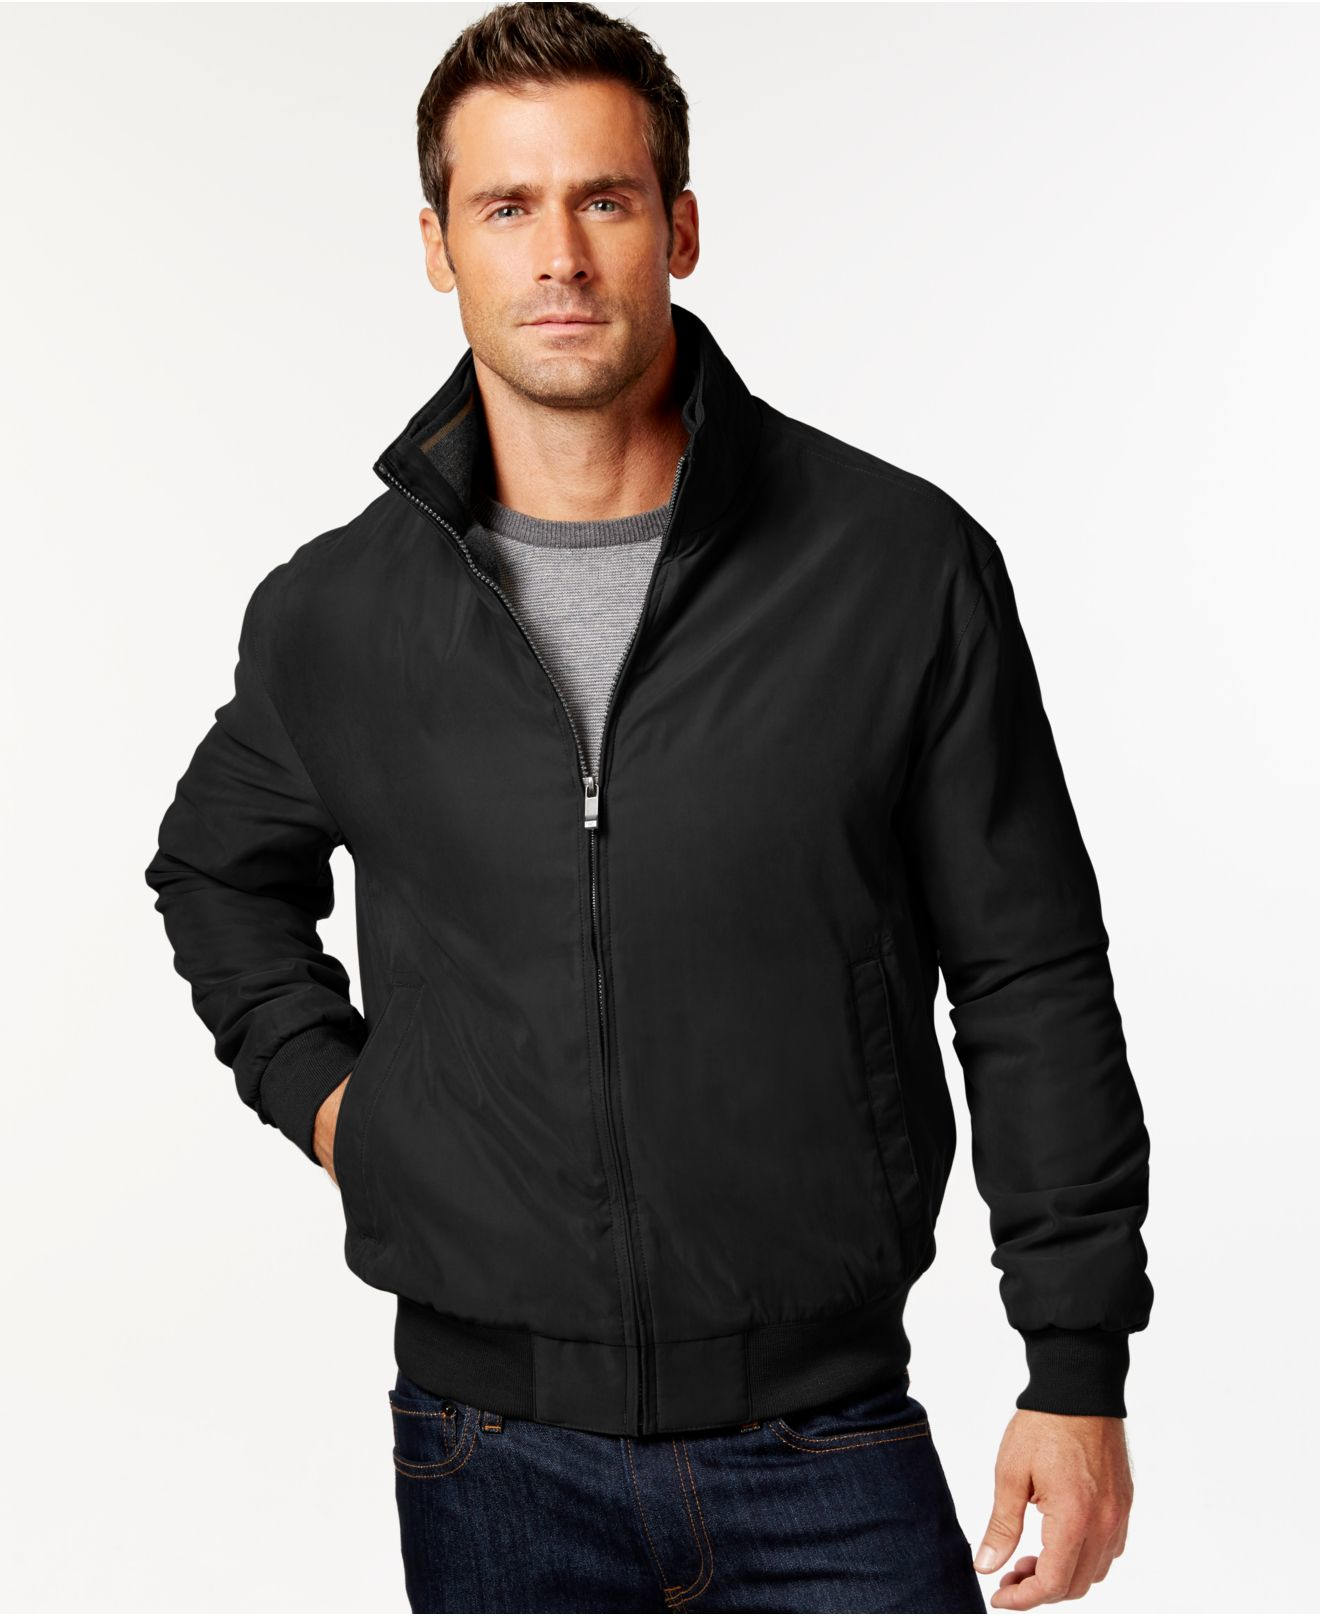 Free shipping and returns on Men's Bomber Coats & Jackets at teraisompcz8d.ga